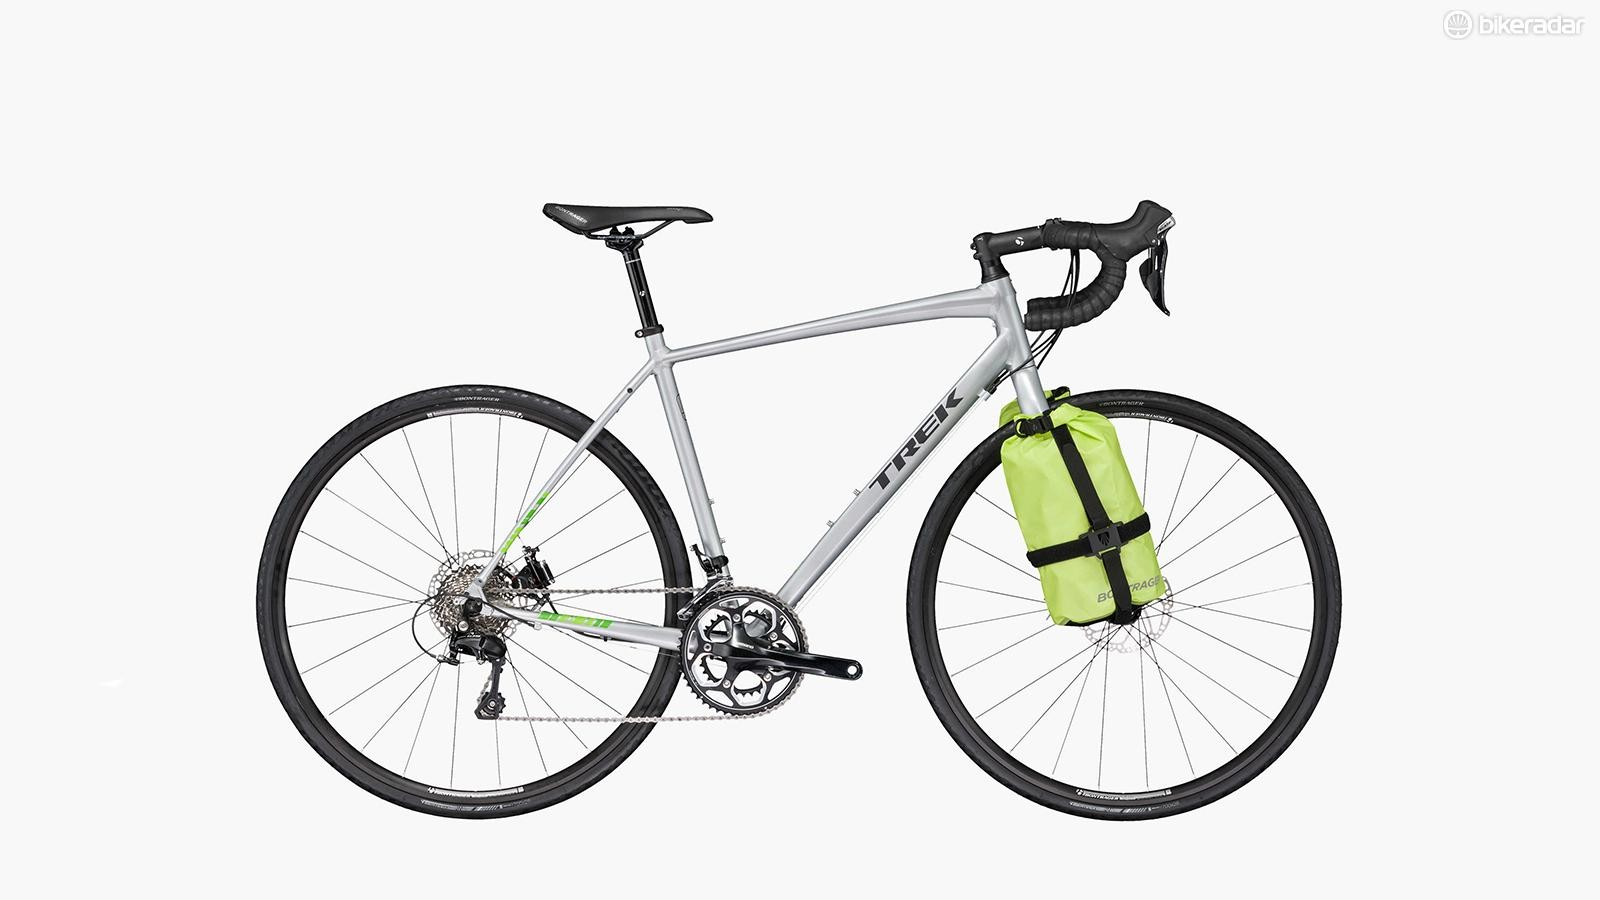 Trek is recalling more than 1,500 720 Disc touring bikes with 24-hole wheelsets citing a high rate of spoke failure